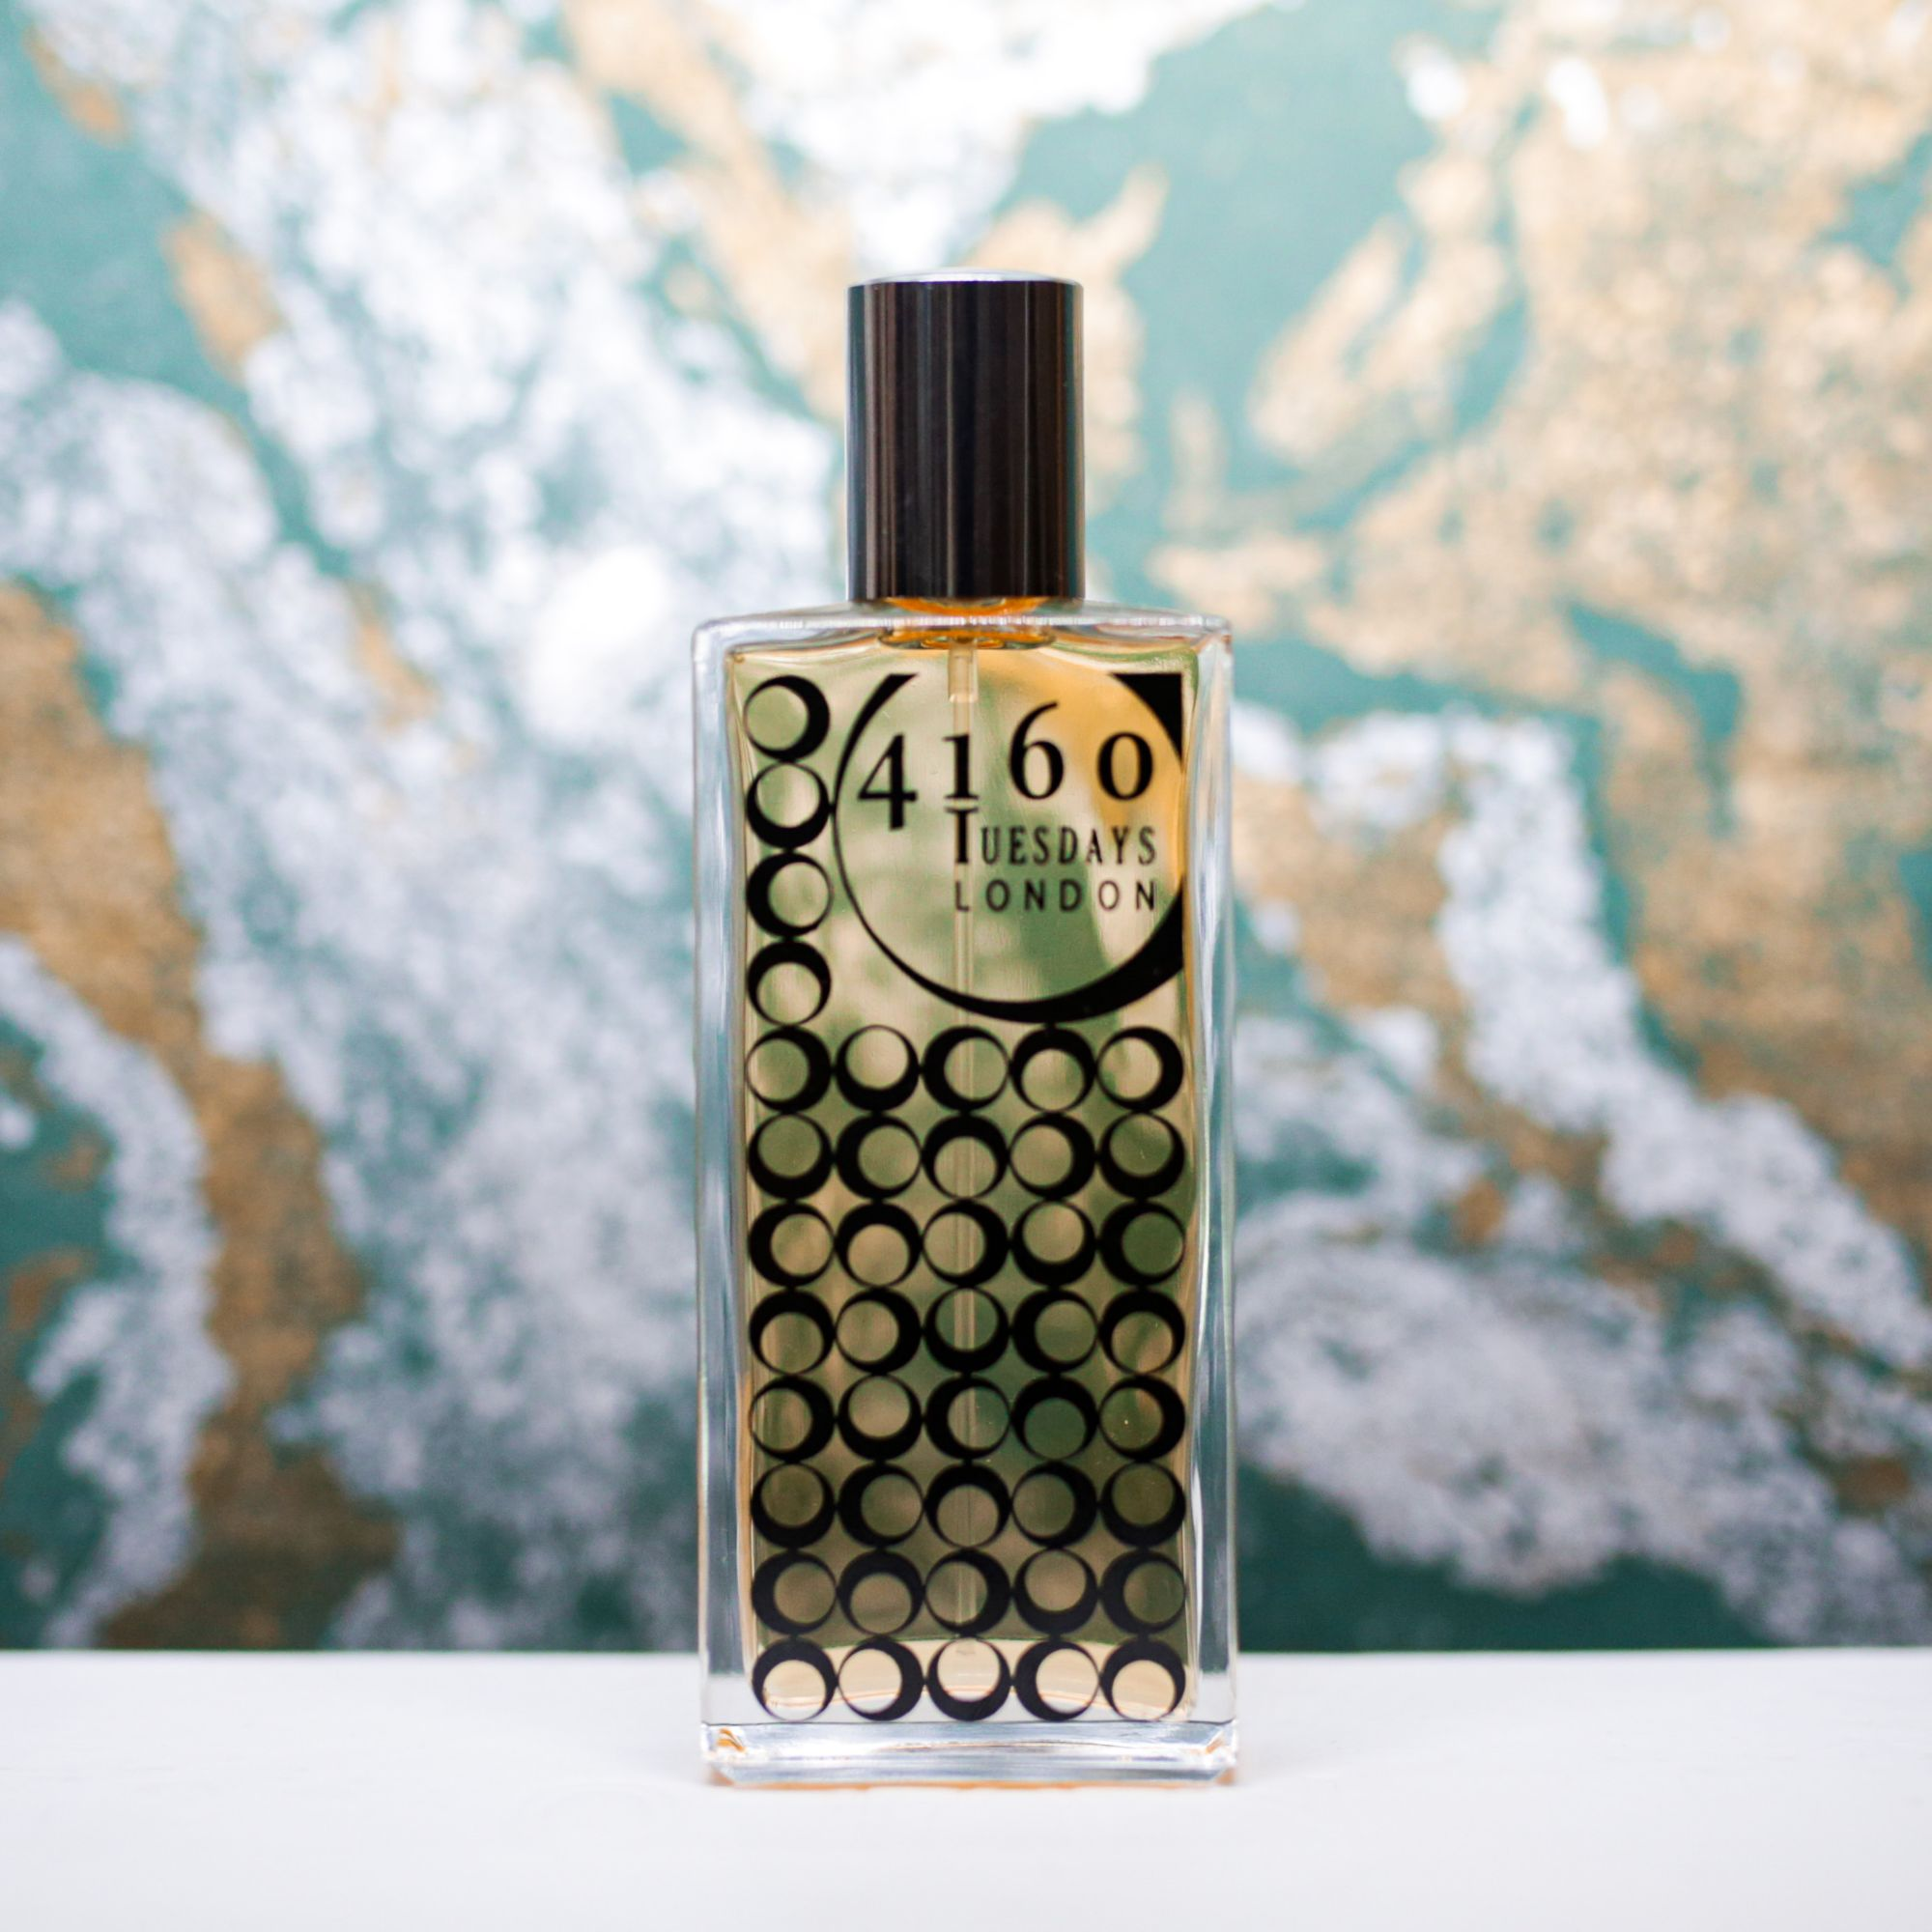 A bottle 4160 Tuesdays perfume against a dark green, silver and gold marbled backdrop